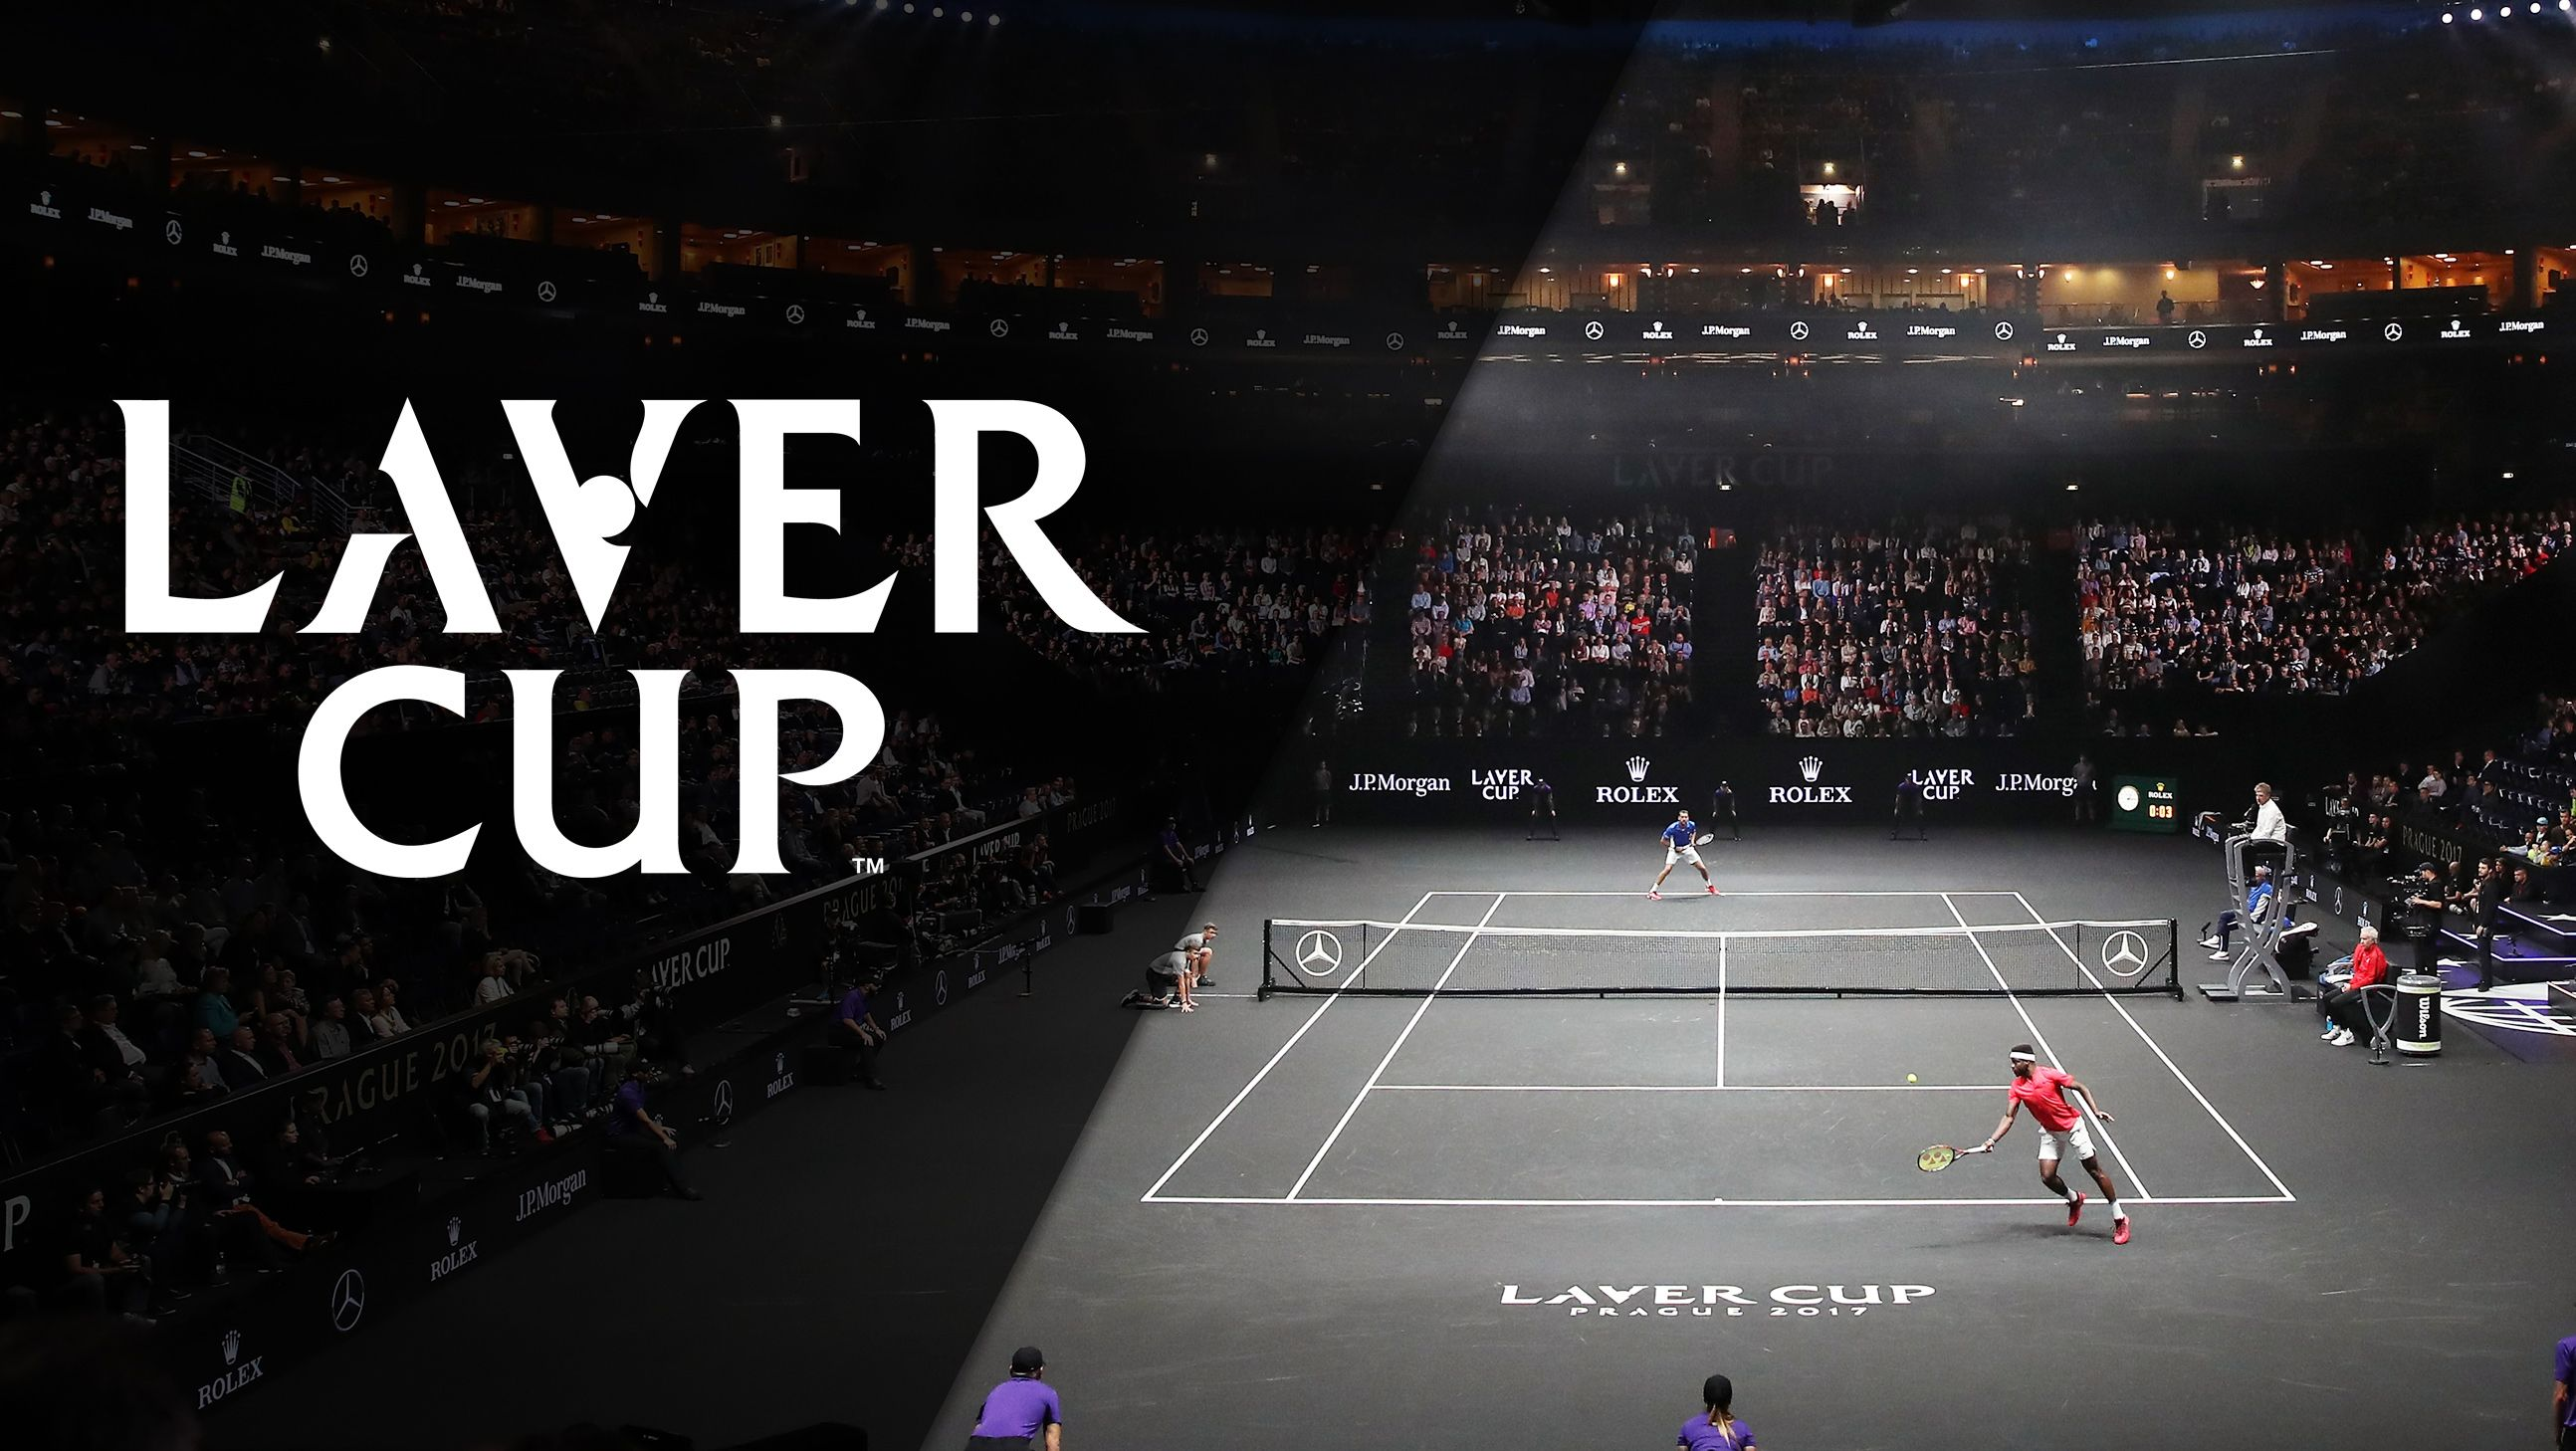 Laver Cup (Day 2 - Night Session)